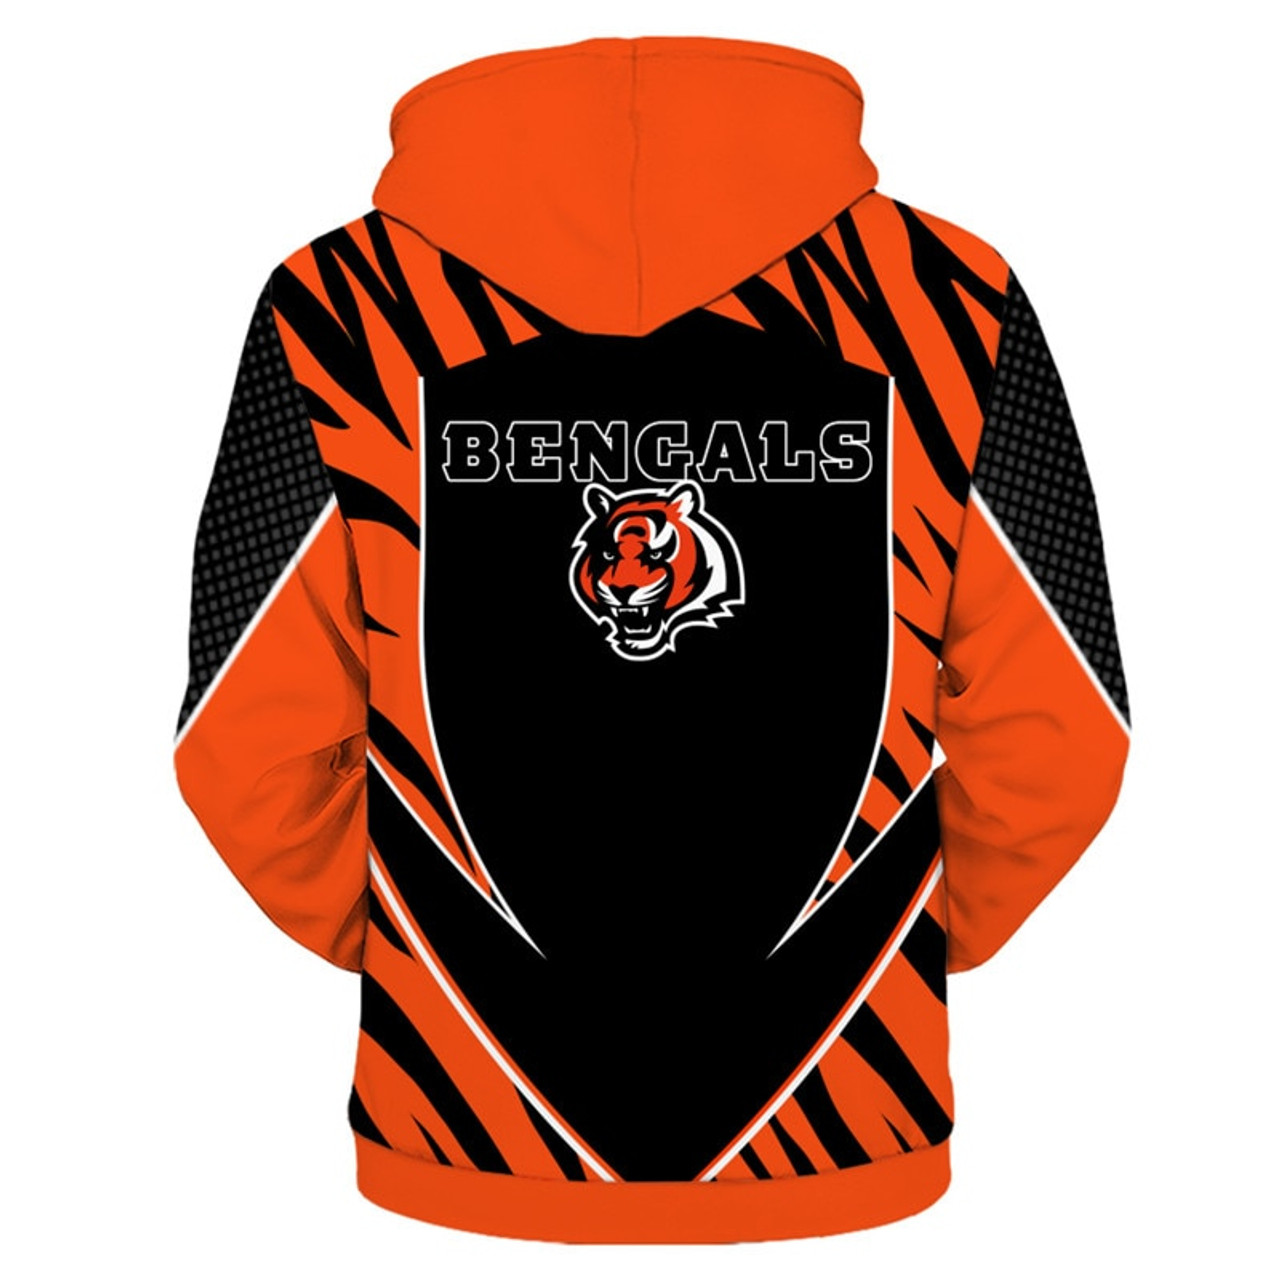 08a8a950 **(OFFICIAL-N.F.L.CINCINNATI-BENGALS-TEAM-PULLOVER-HOODIES/NEW-CUSTOM-3D-GRAPHIC-PRINTED-DOUBLE-SIDED-DESIGNED/ALL-OVER-OFFICIAL-BENGALS-LOGOS  & ...